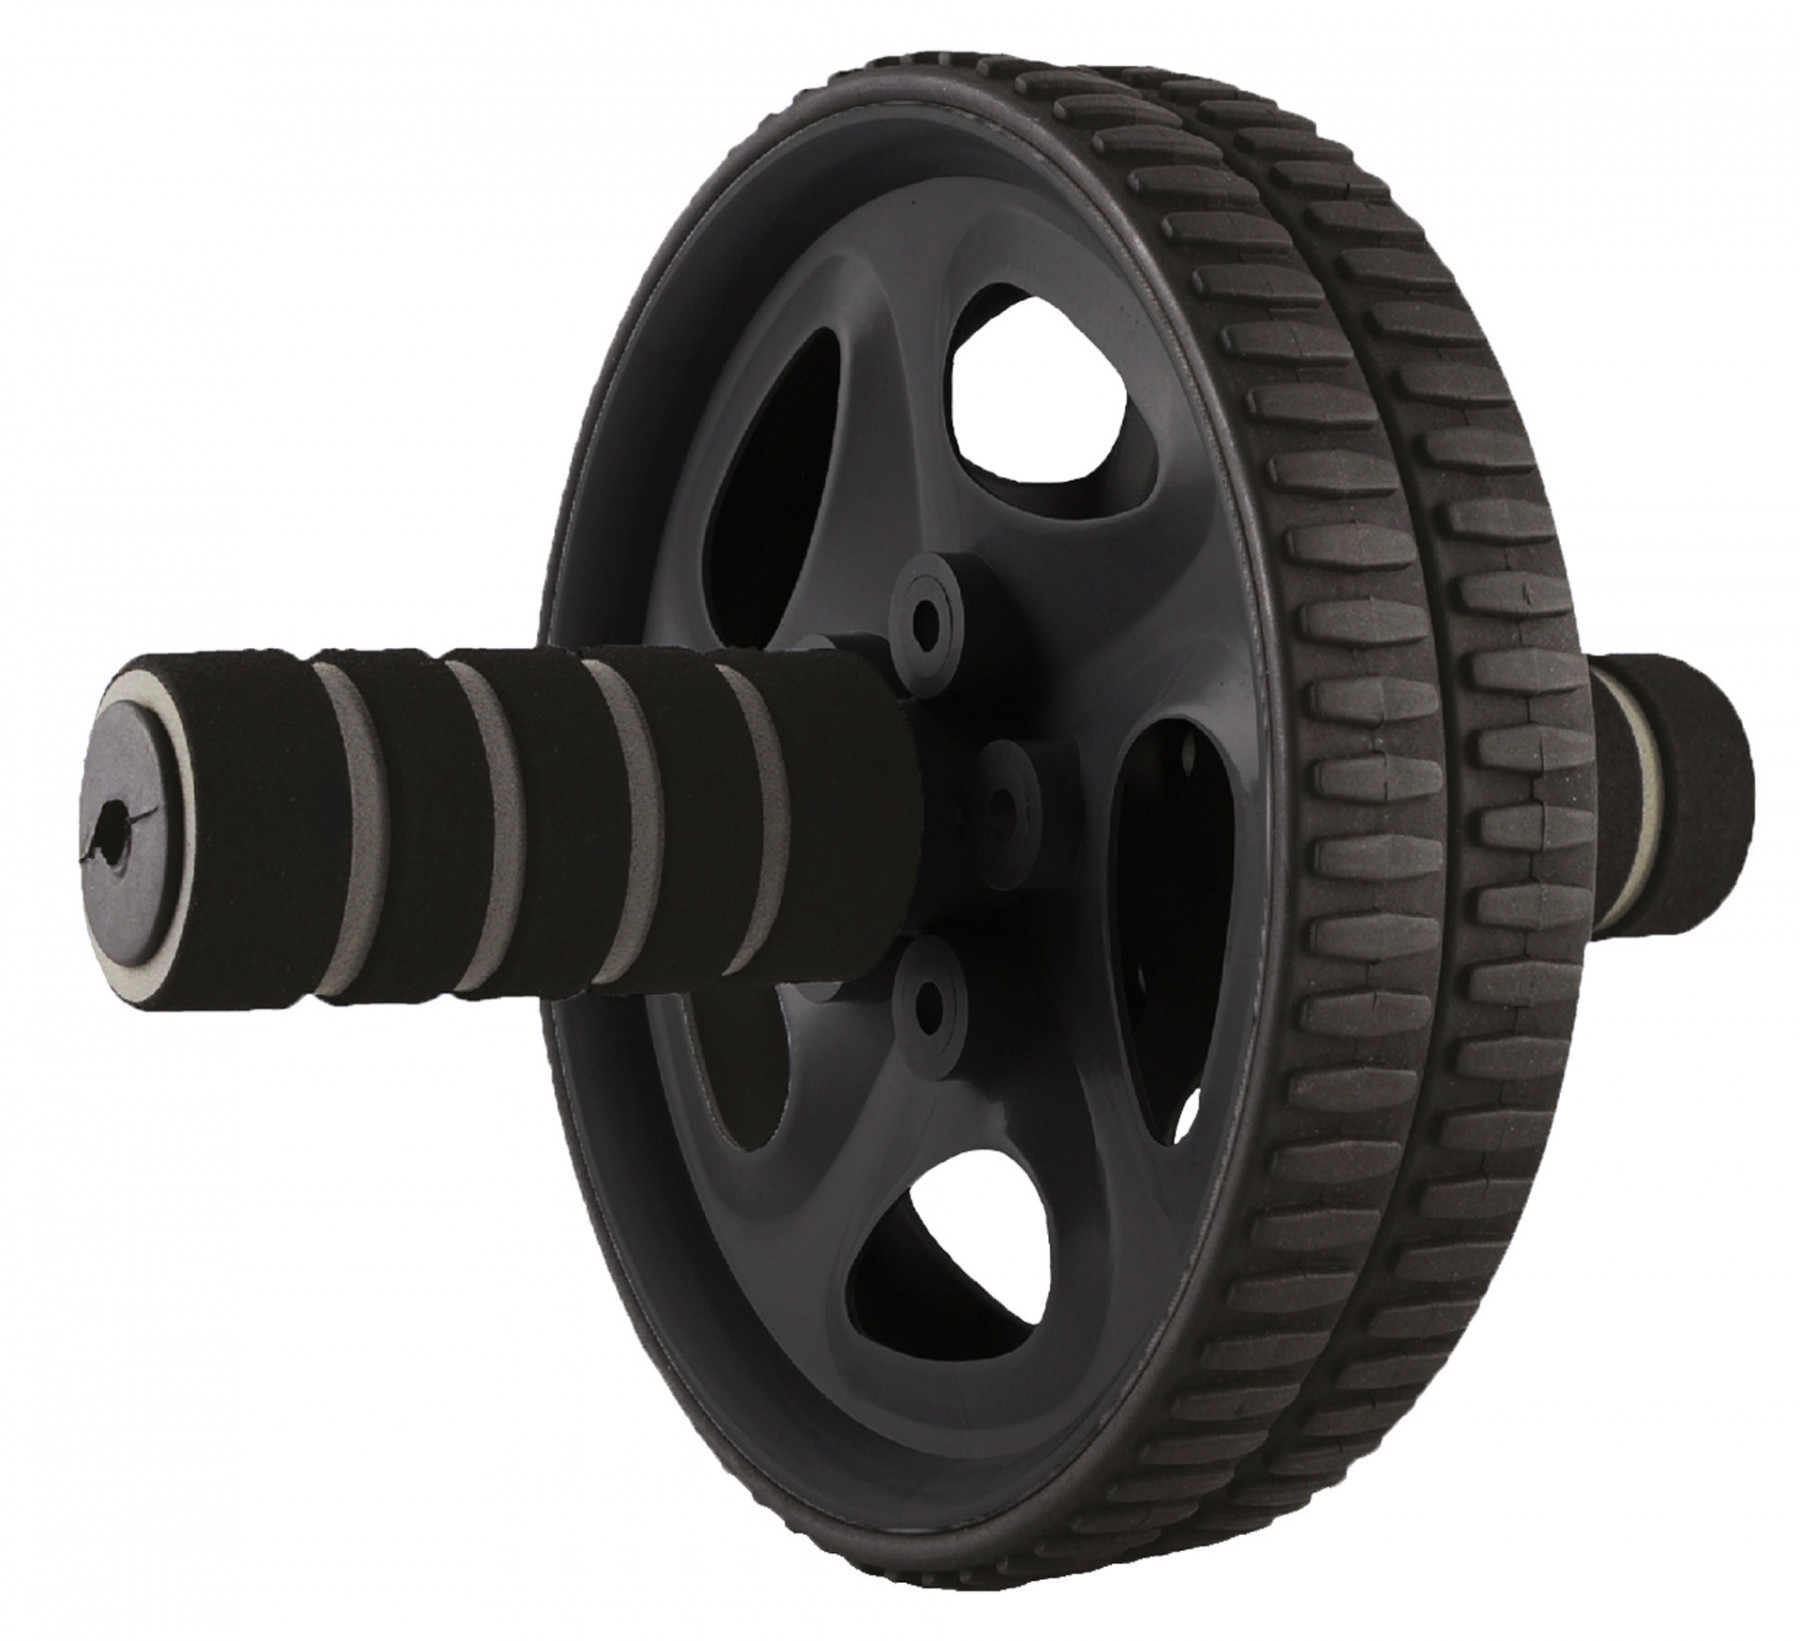 Rucanor_Power_Wheel_1 (1)